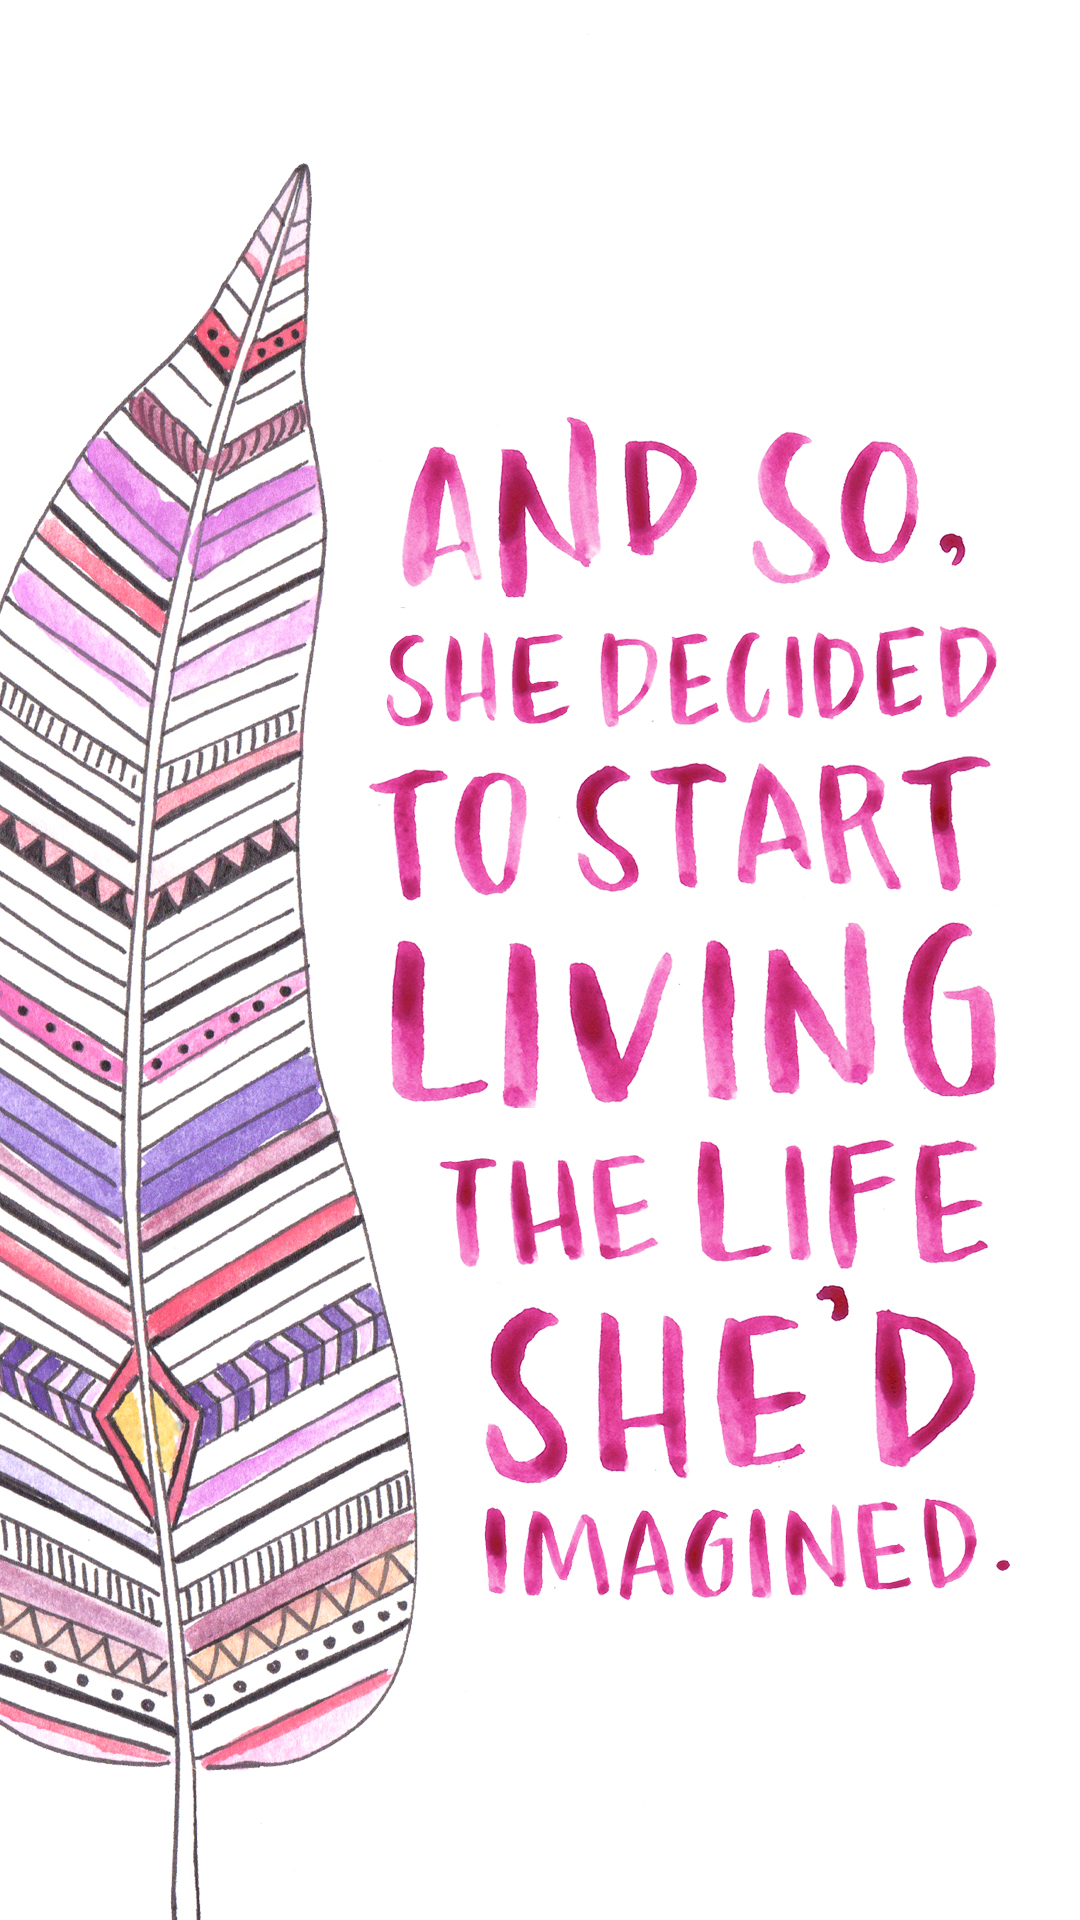 And-so-she-decided-living-the-life-she-d-imagined-wallpaper-wp3402354